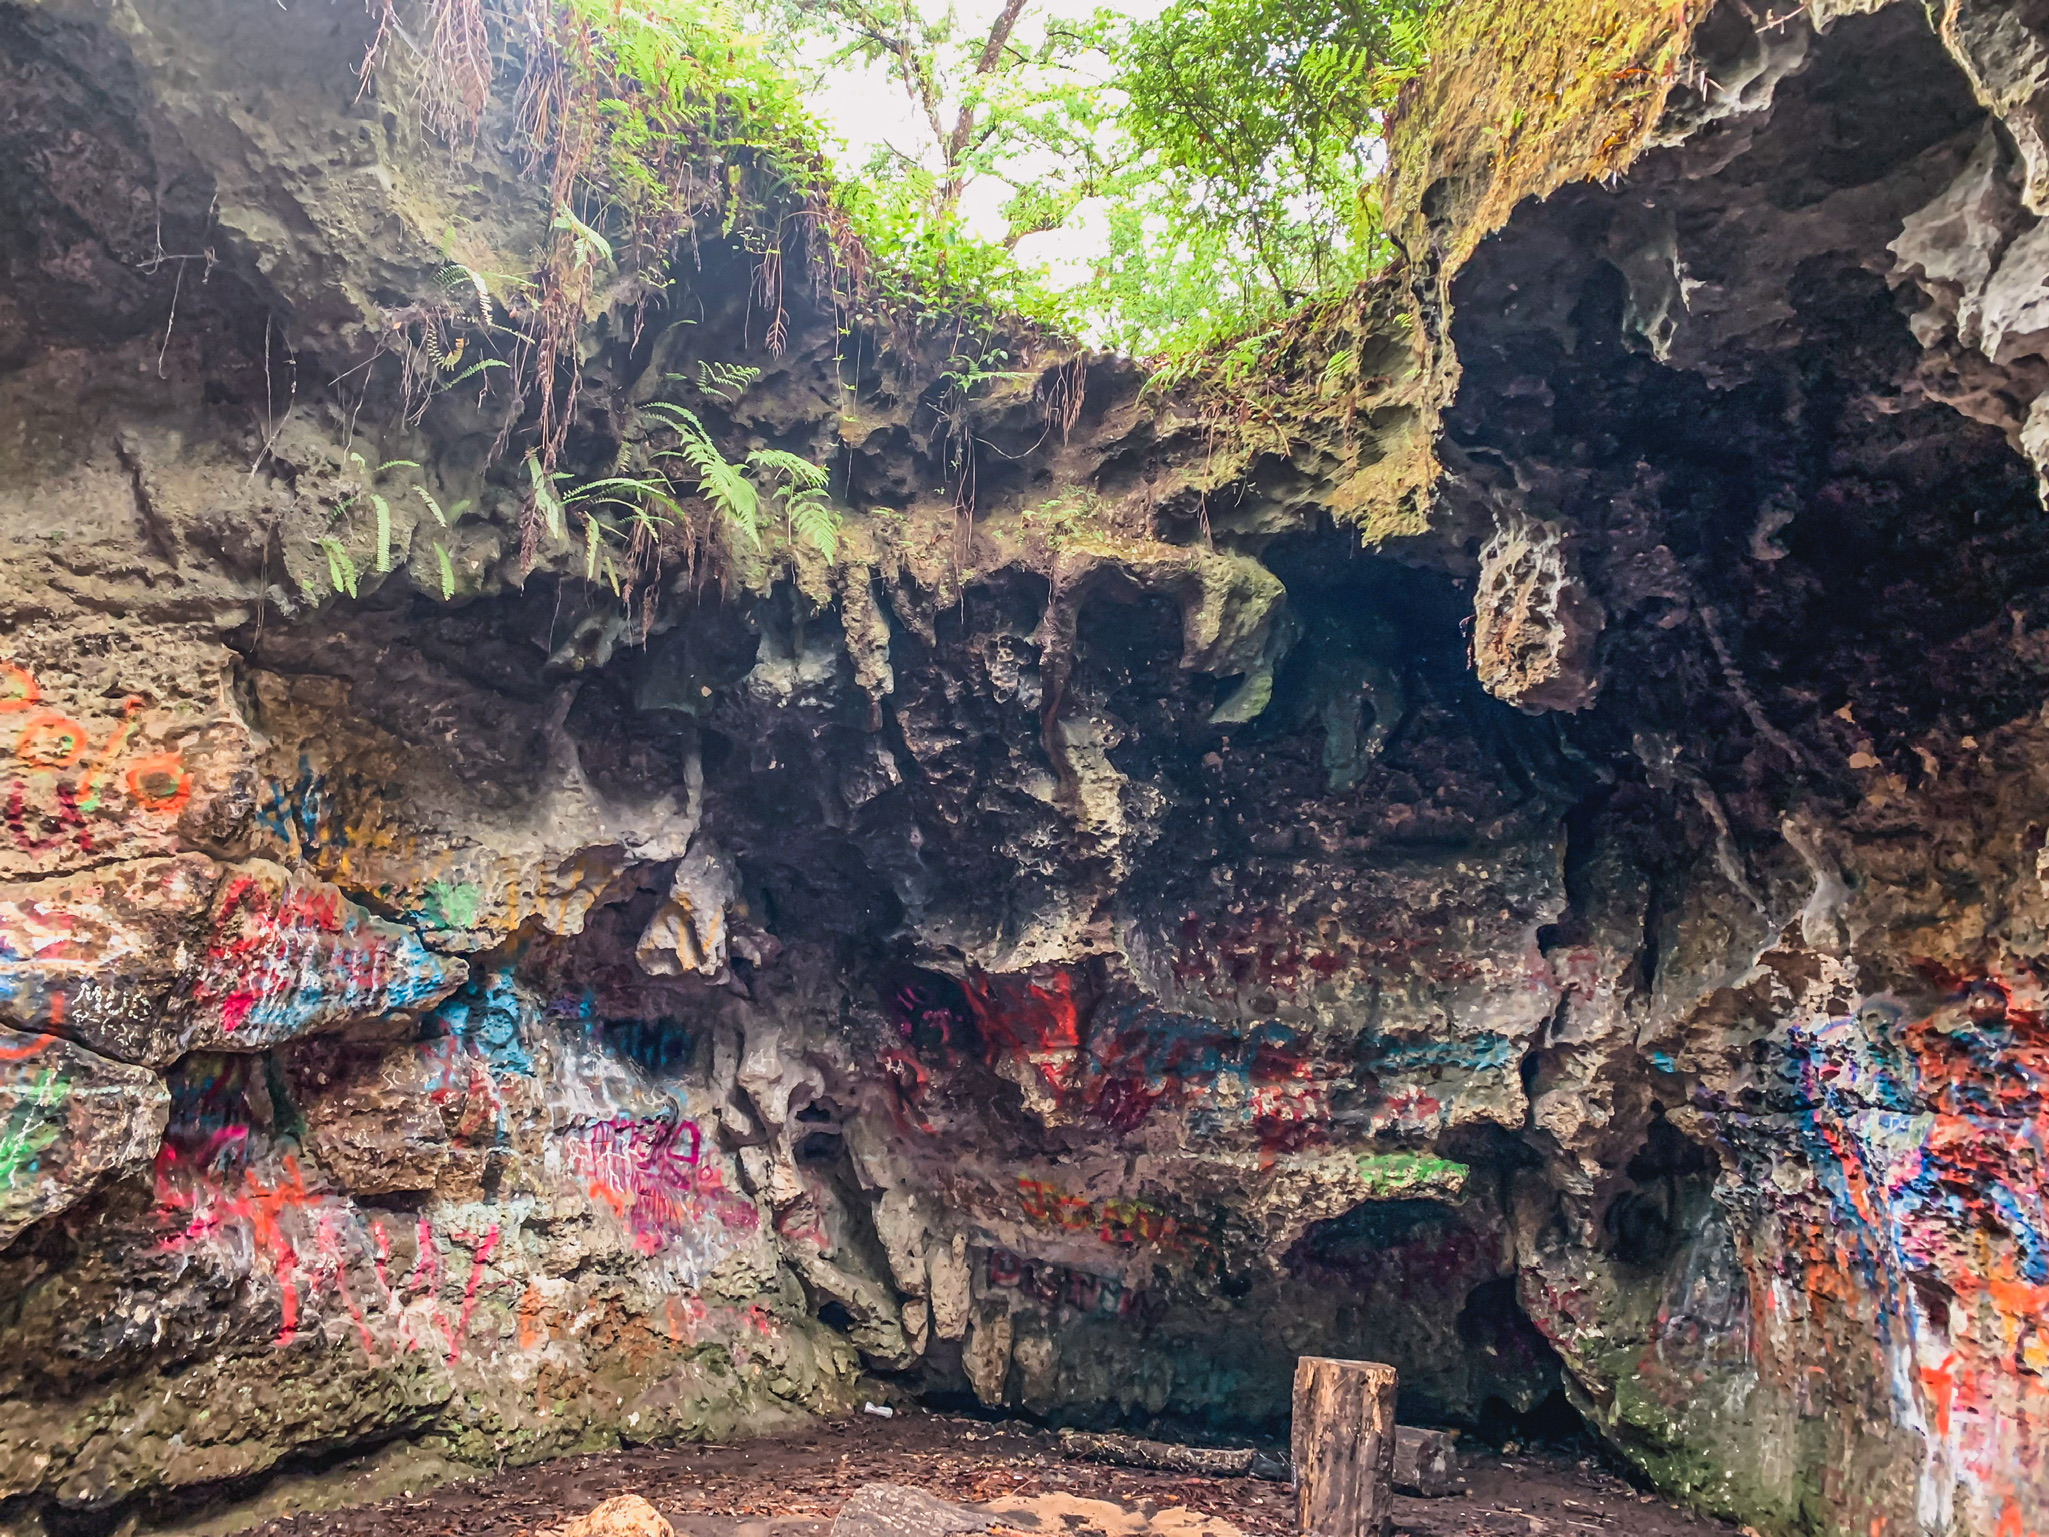 vandal cave in Withlacoochee State Forest